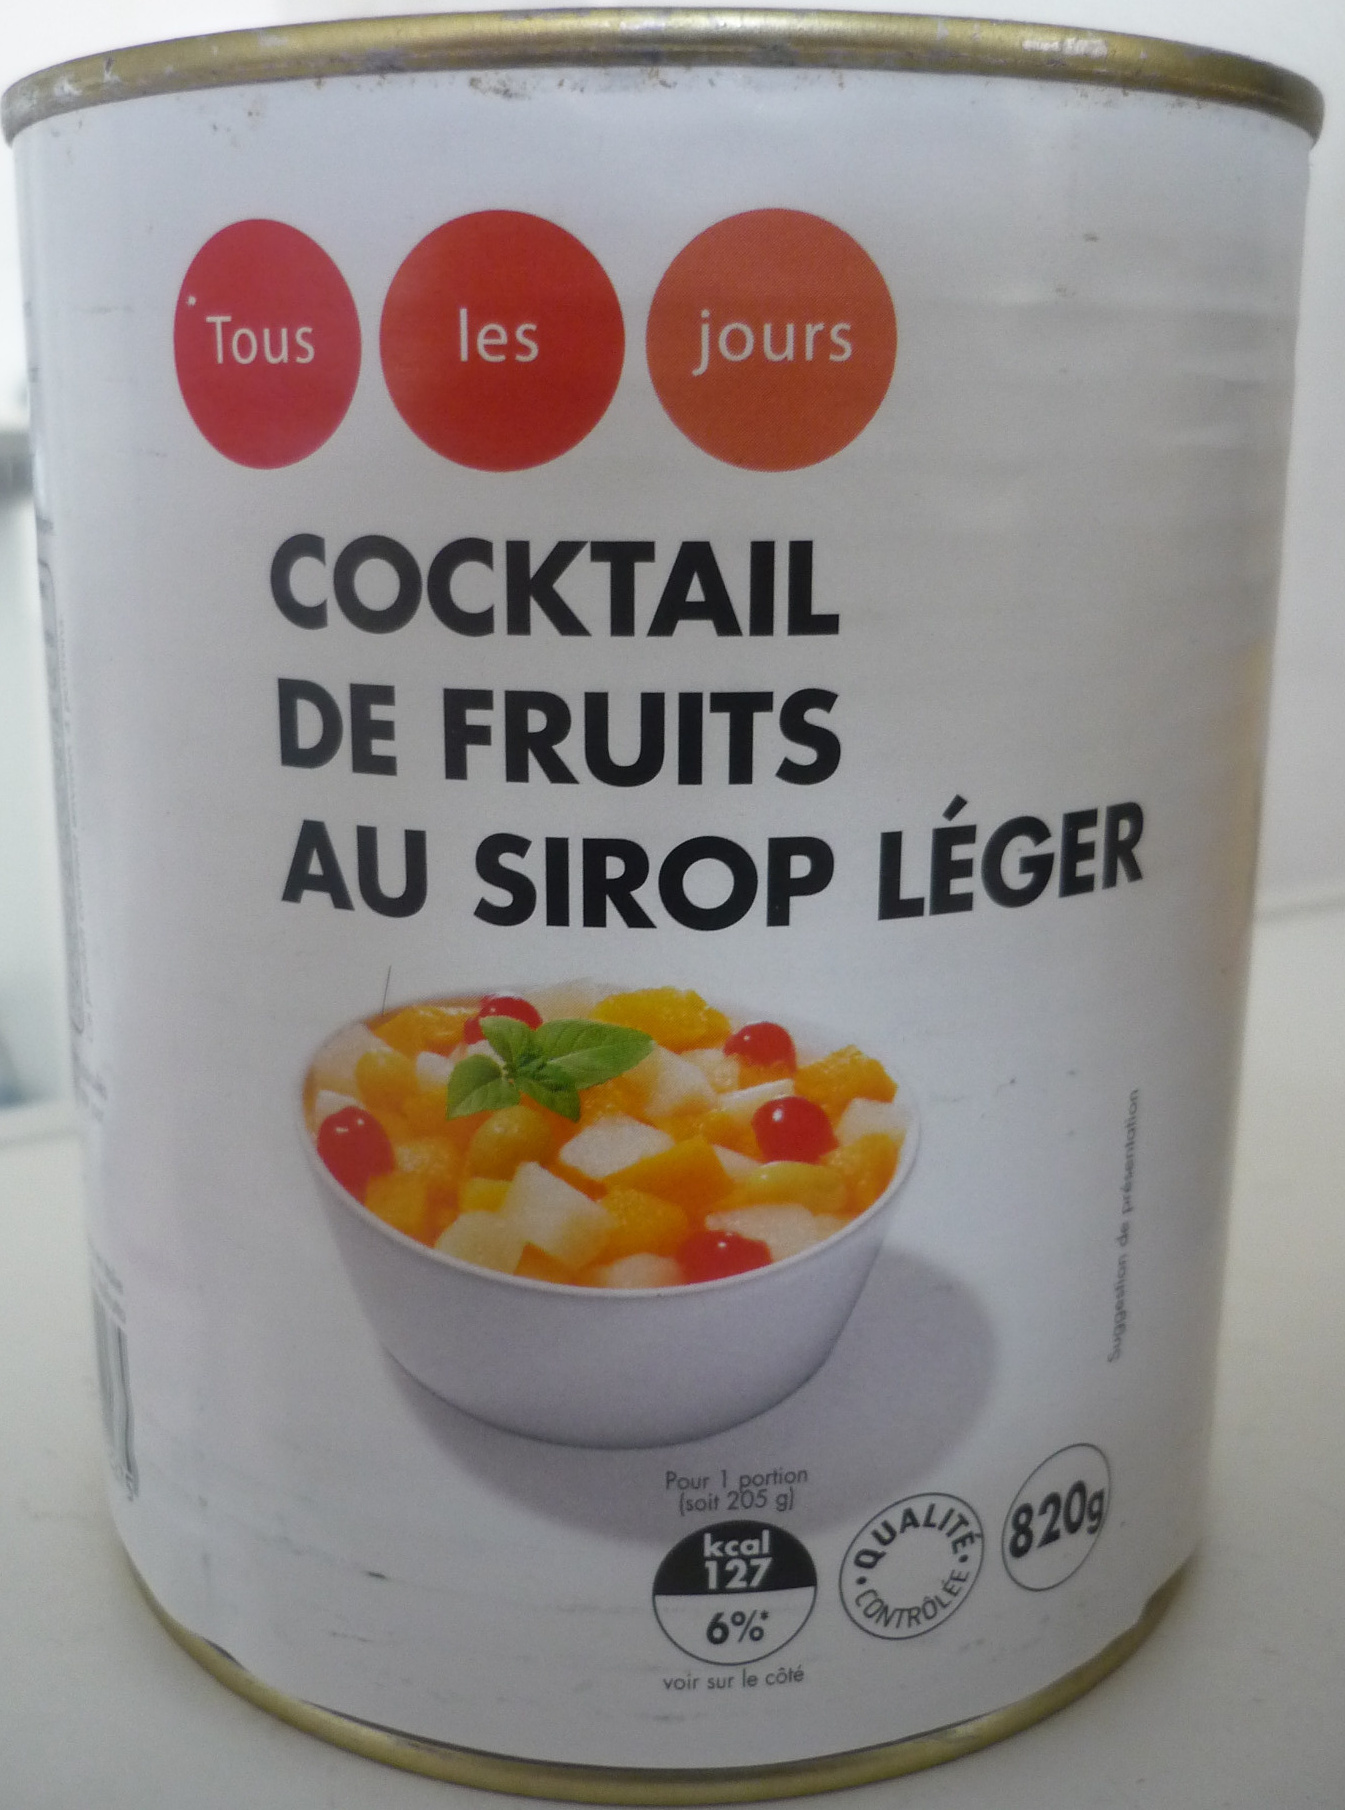 Cocktail de fruits au sirop l ger tous les jours 820 g for Cocktail de fruit